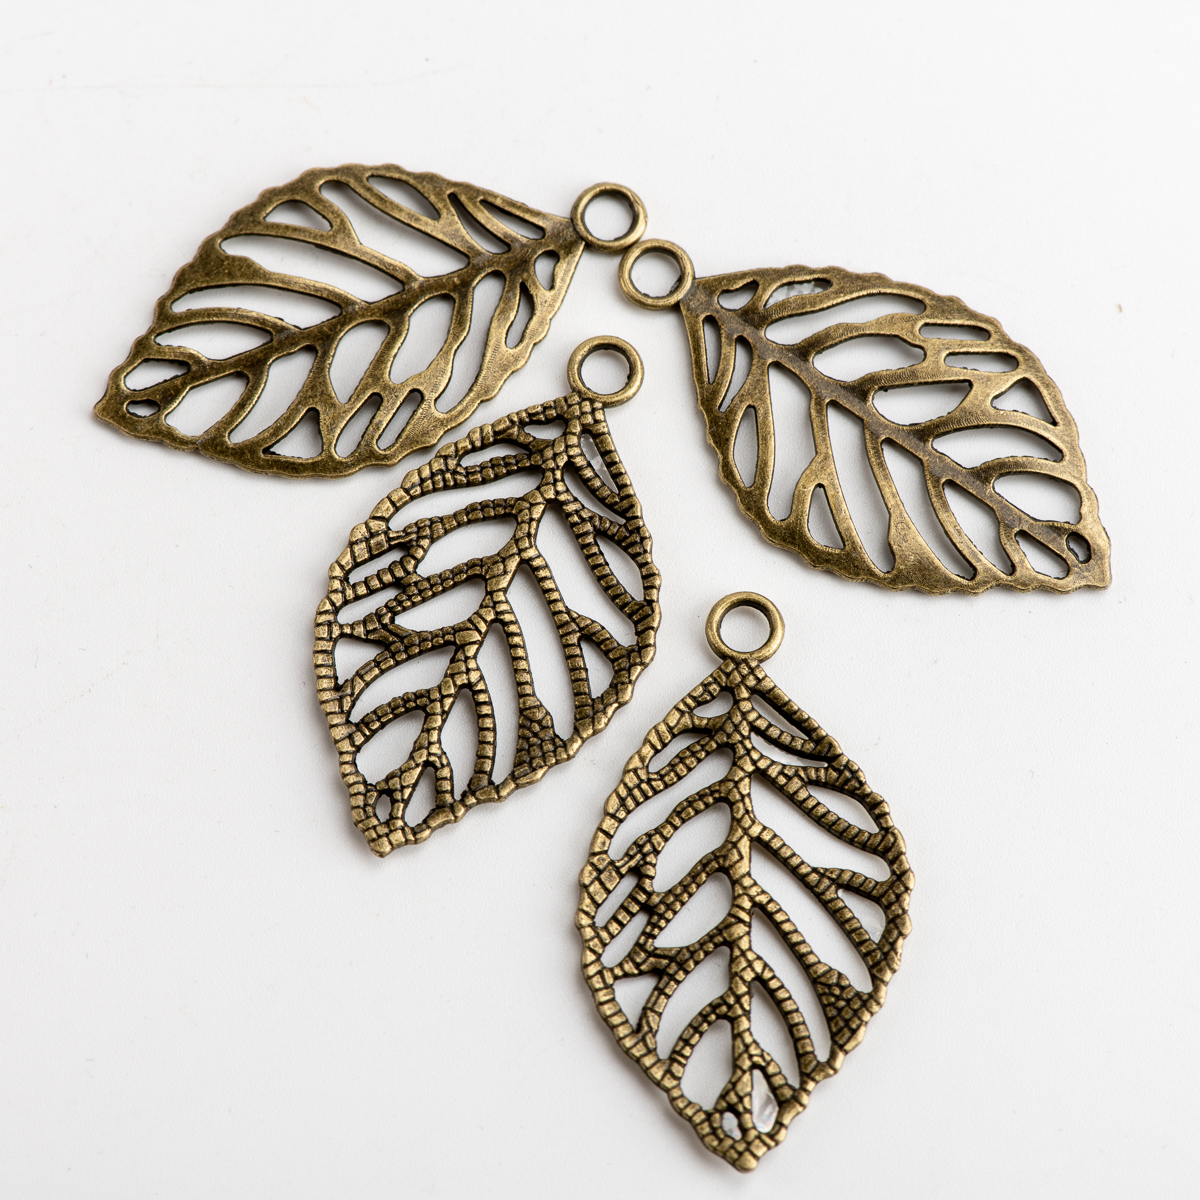 Hollow Leaf DIY Alloy Pendant For Jewelry Needlework Charms Jewelry Findings & Components For Jewelry Making #JZ105